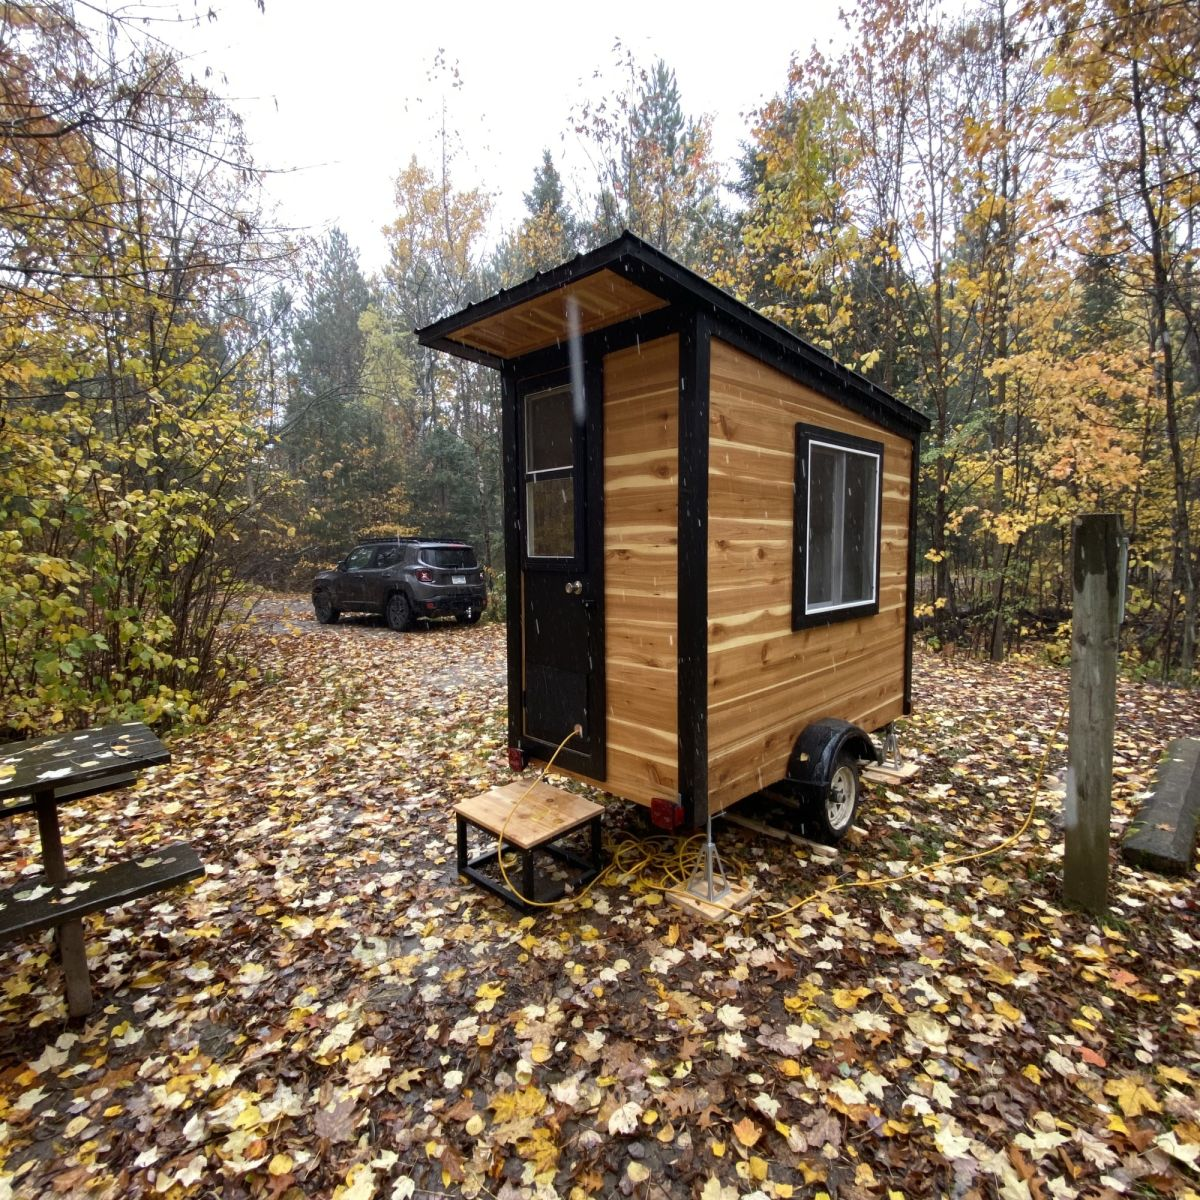 Midwest Icebox Tiny House For Sale In Mcgregor Minnesota Tiny House Listings